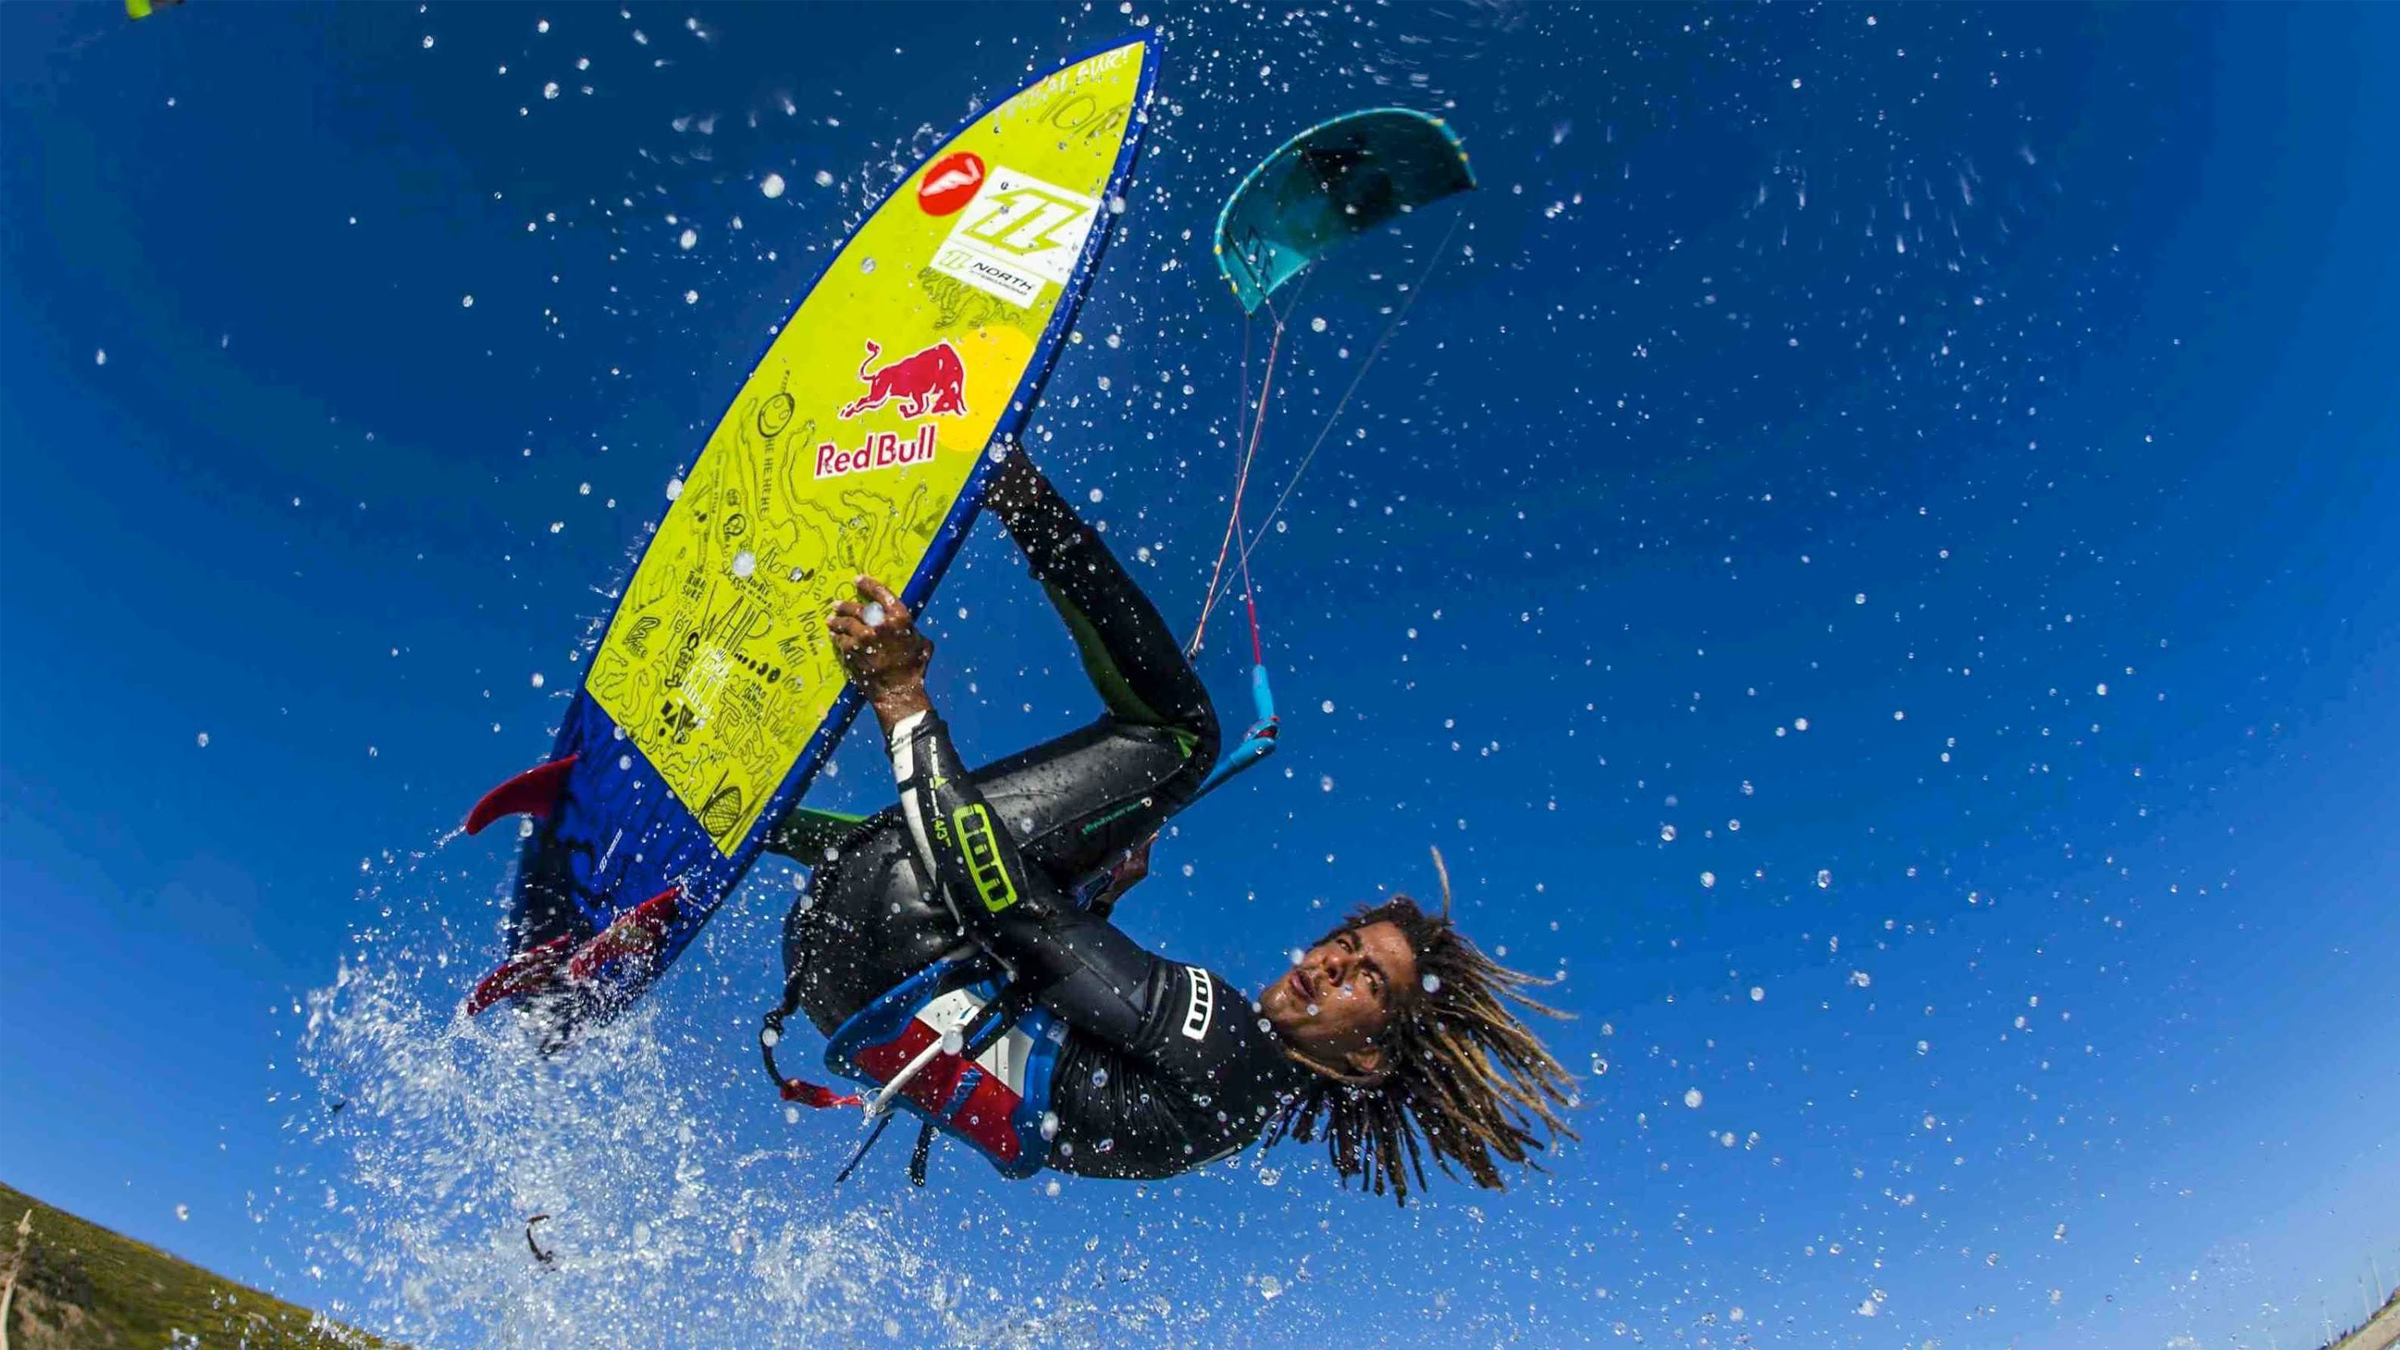 kitesurf wallpaper image - Airton Cozzolino with a strapless arial - North kiteboarding - in resolution: High Definition - HD 16:9 2400 X 1350